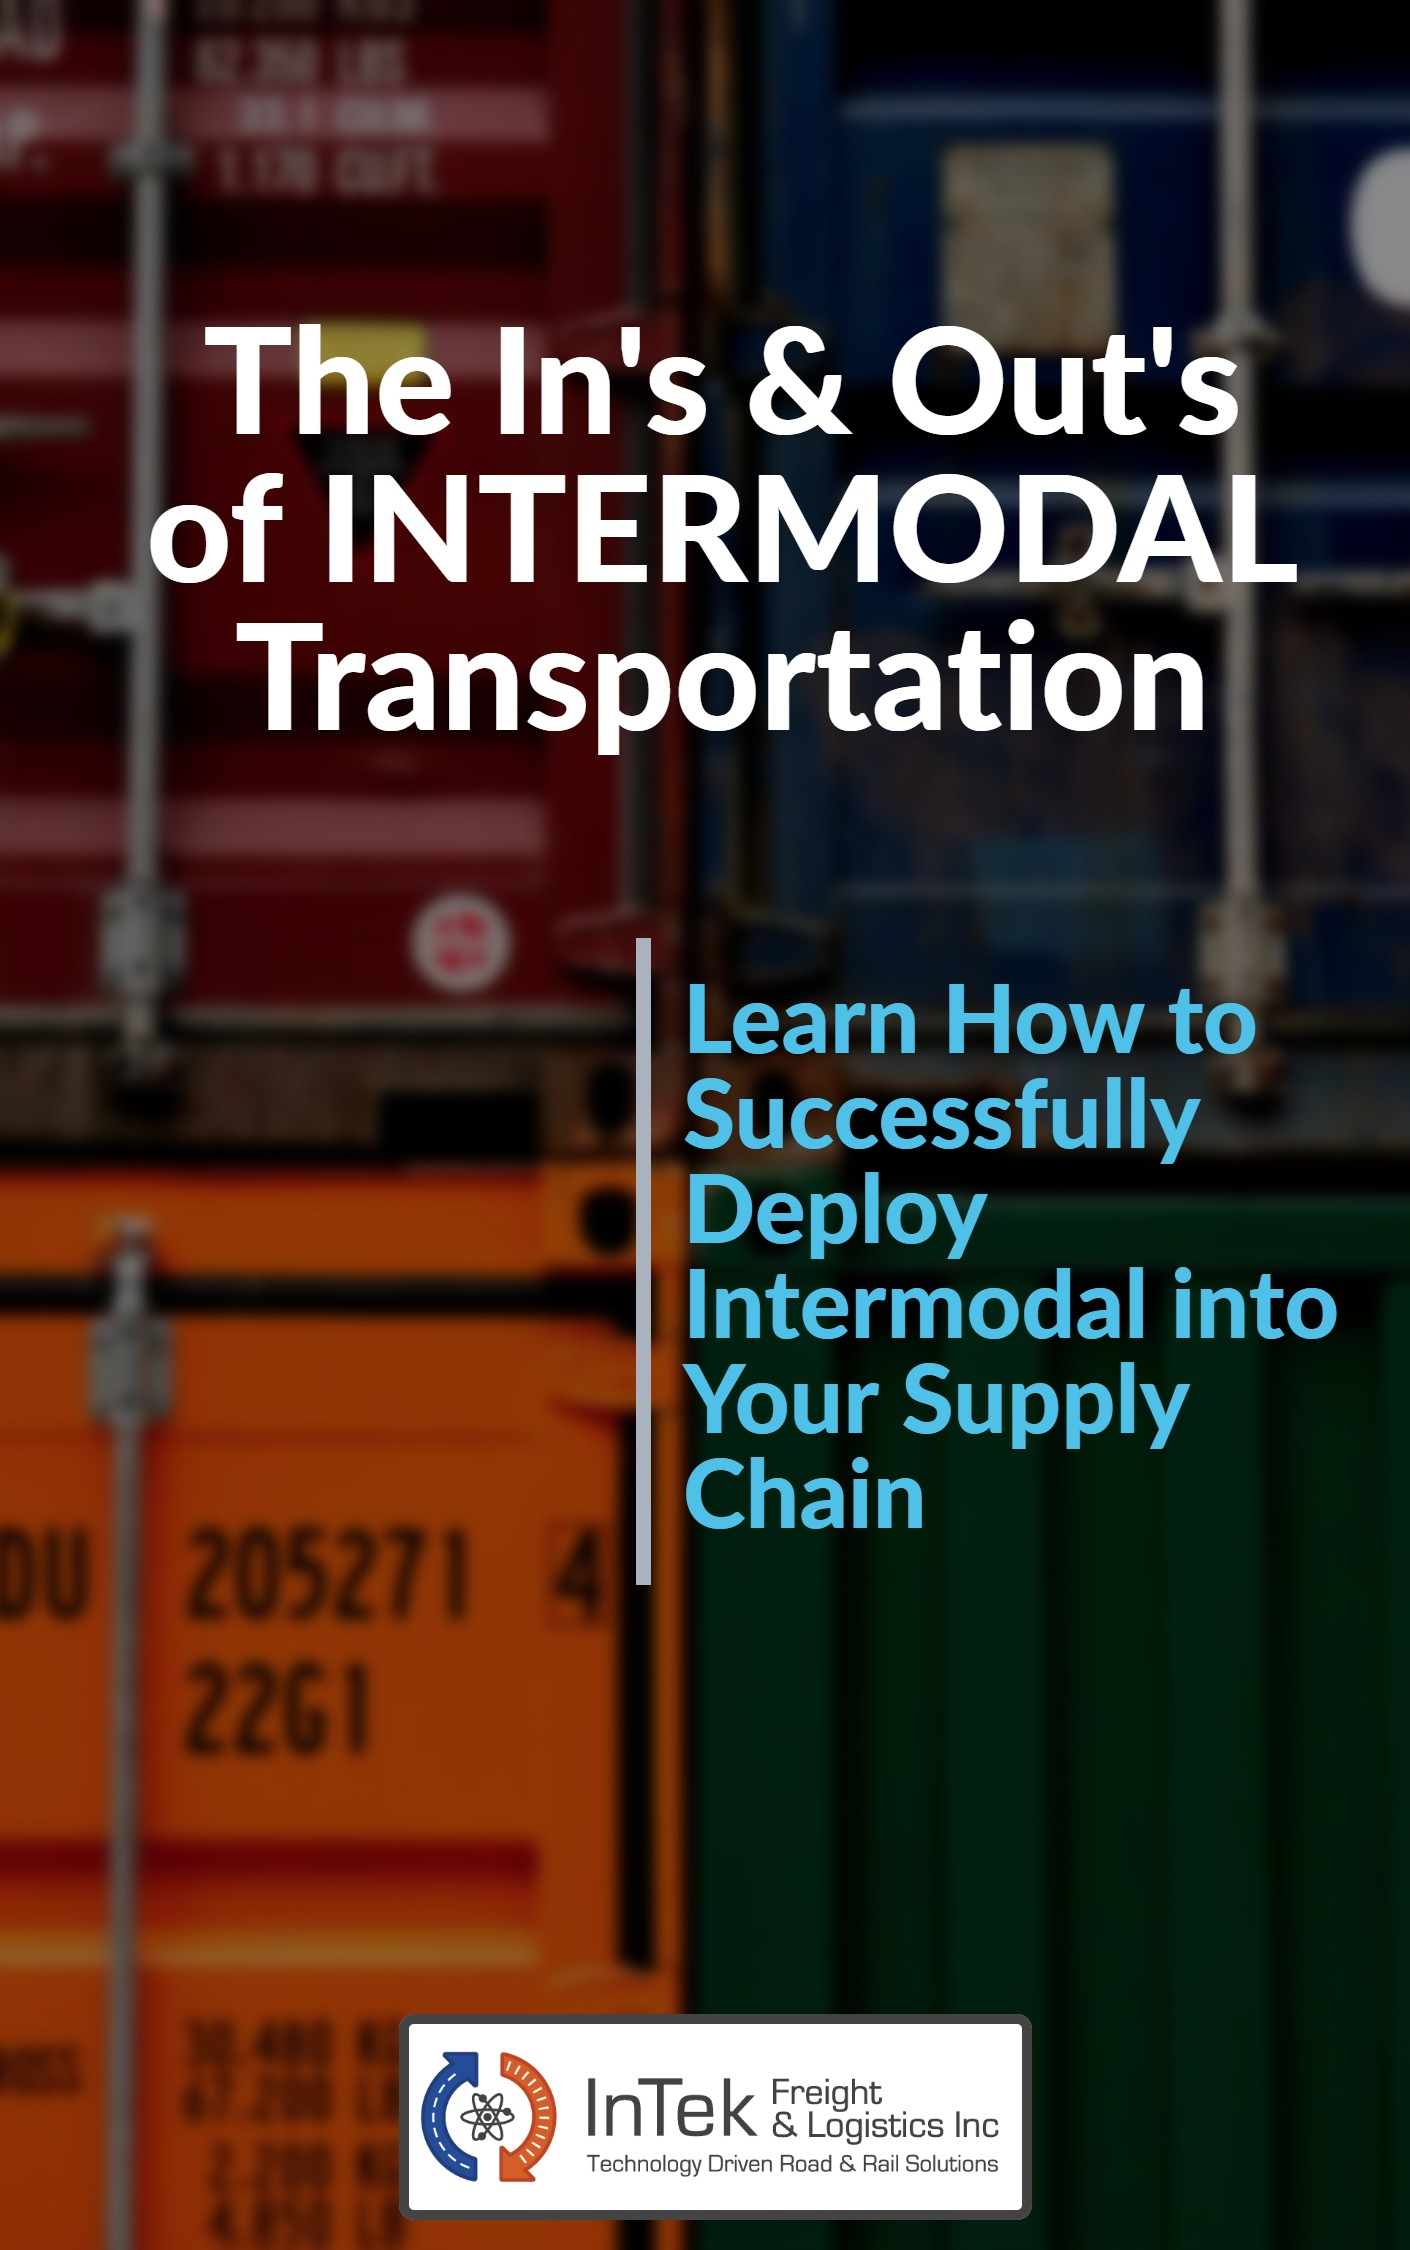 The Ins & Outs of Intermodal Transportation.